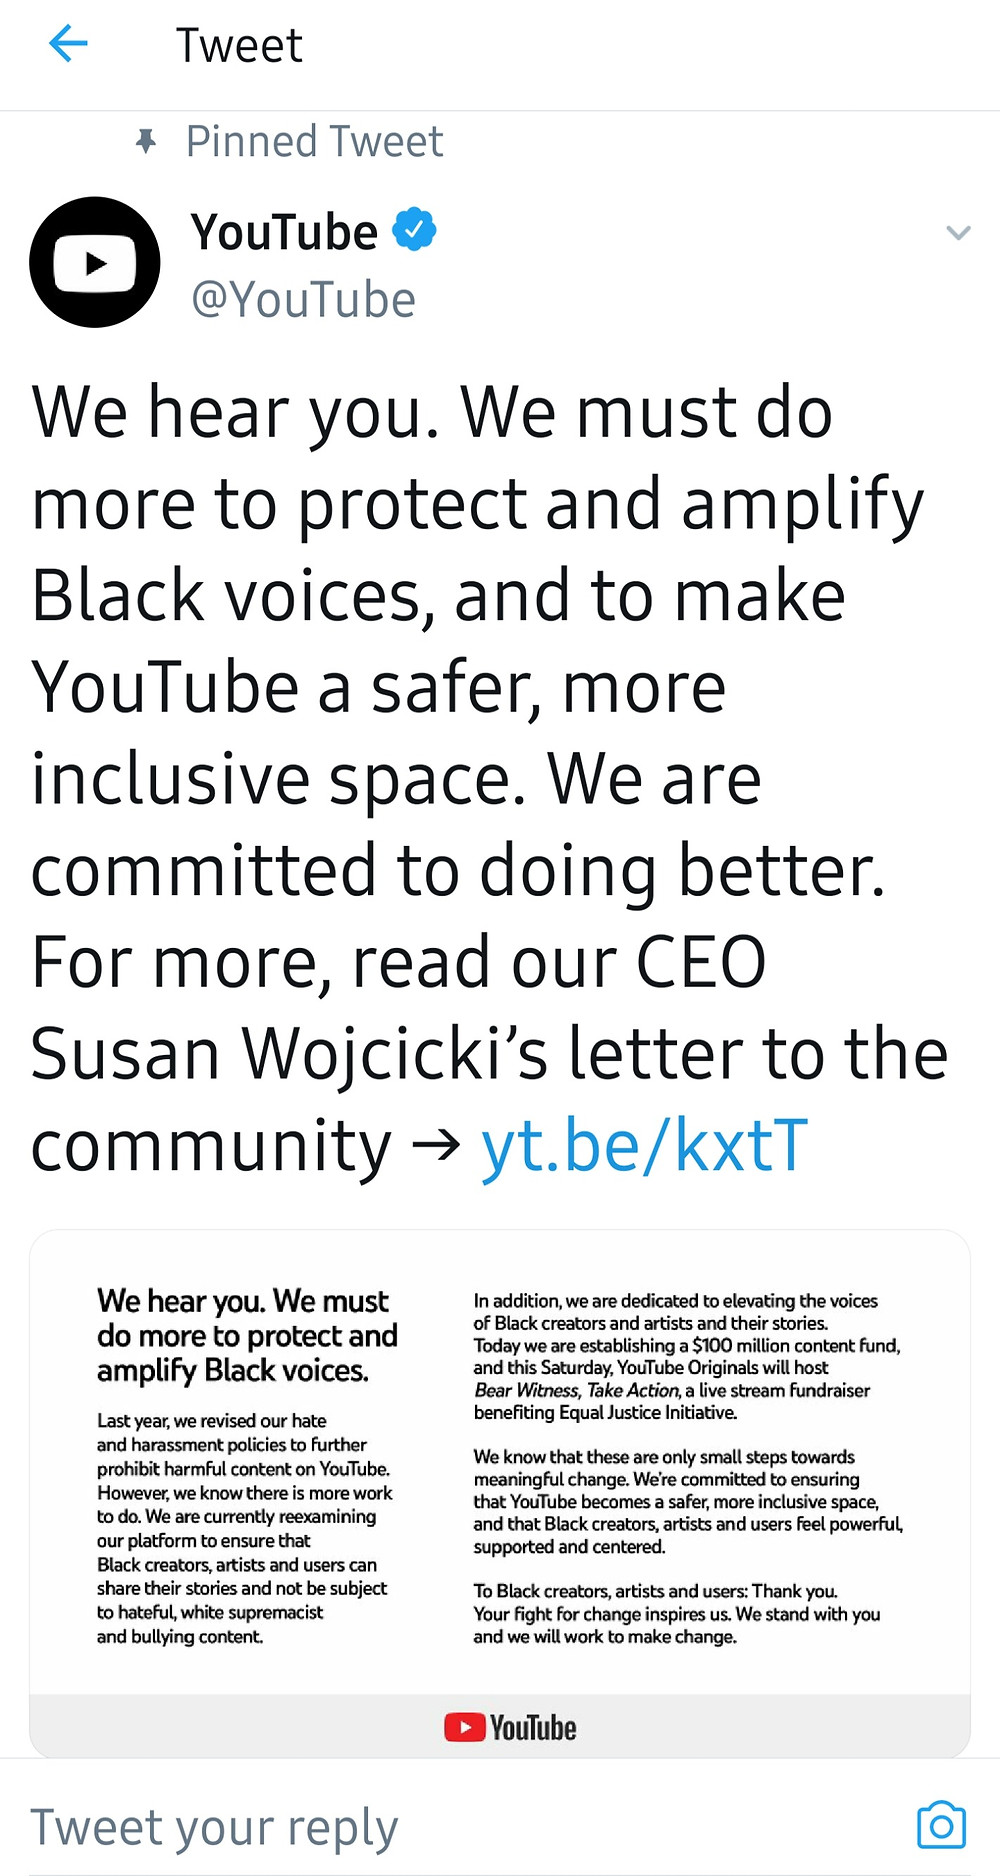 YouTube's Pinned Tweet in support of the powerful Black Lives Matter movement (Credit: Twitter).